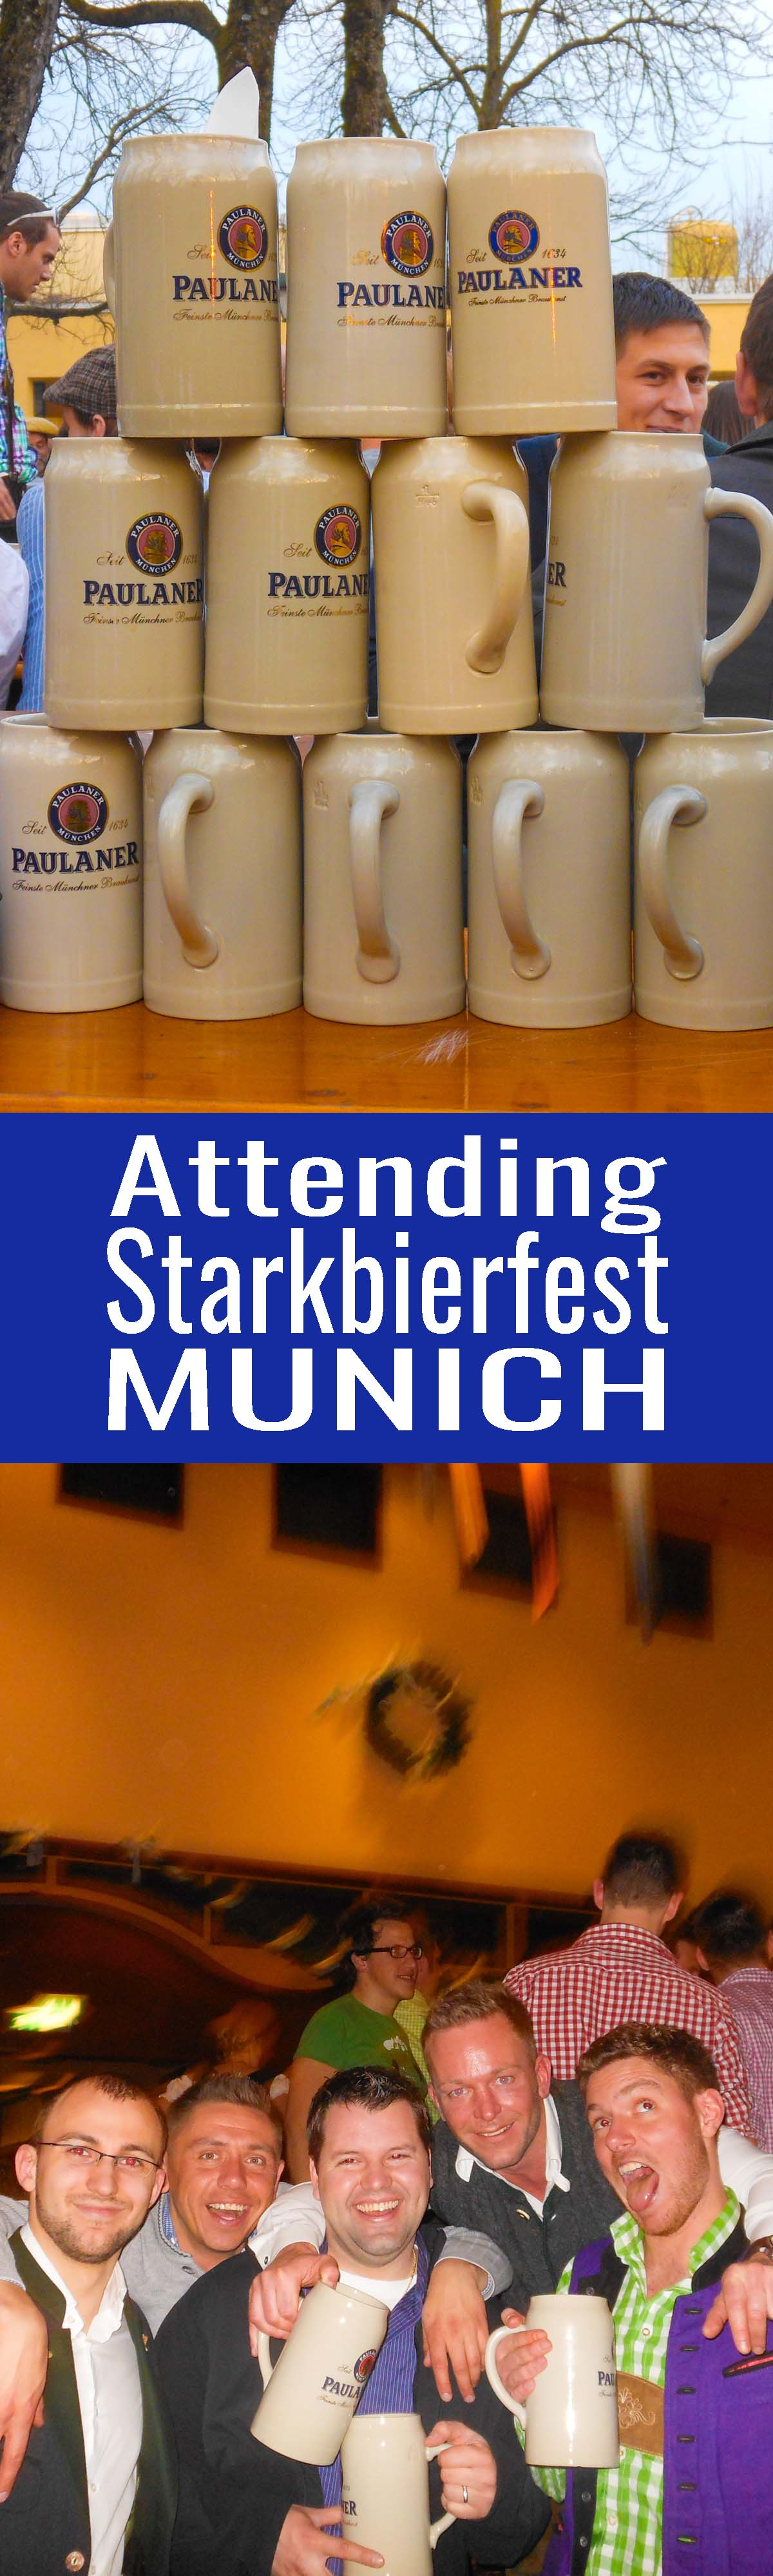 Why fight the crowds of Octoberfest? Plan on attending Starkbierfest instead. It's Munich's lesser known beer festival. It's an authentic good time!